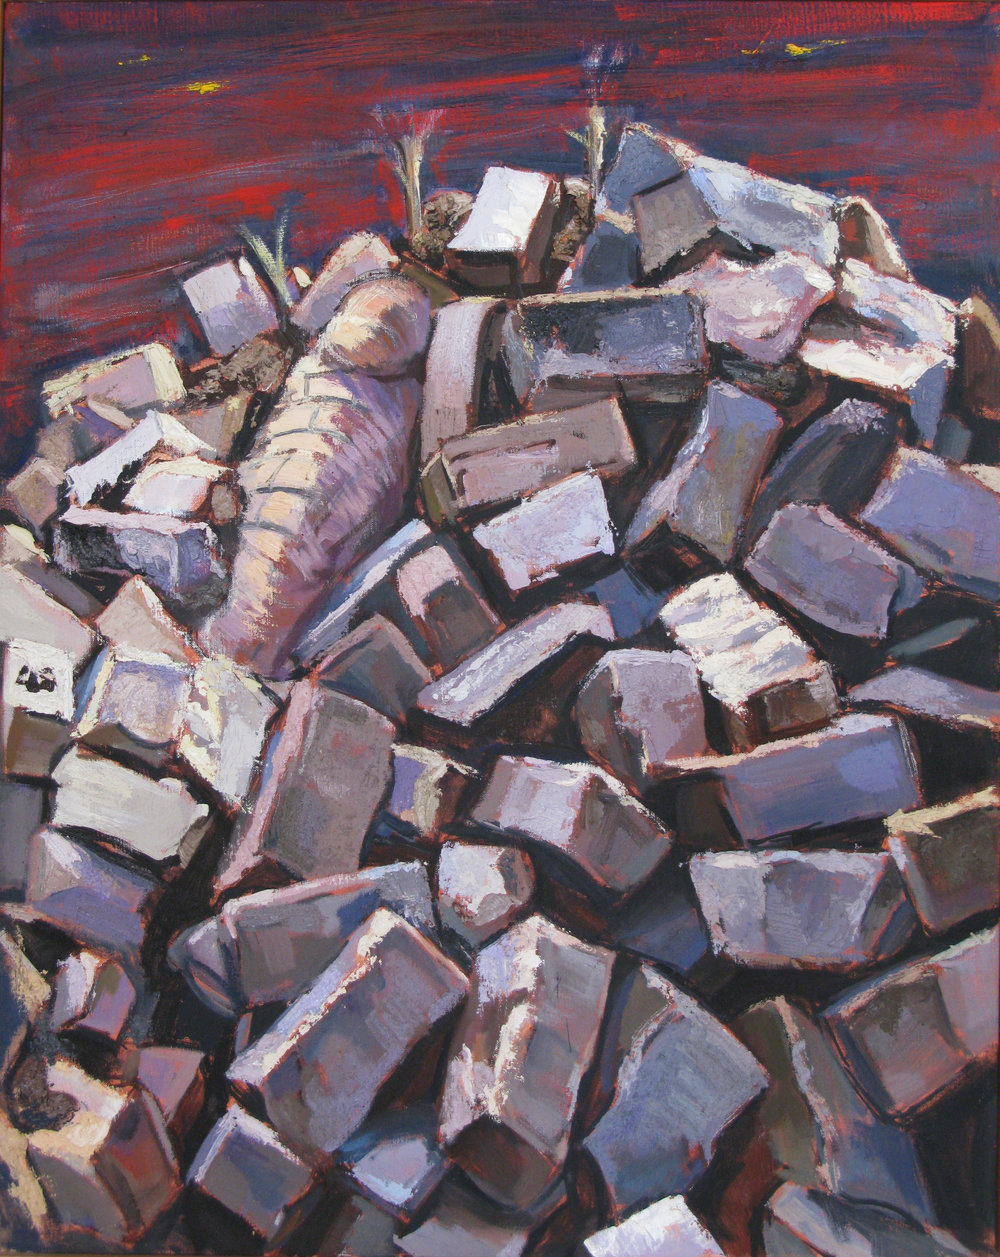 Brick Pile,  oil & sand on canvas, 18 x 24 inches, 2001